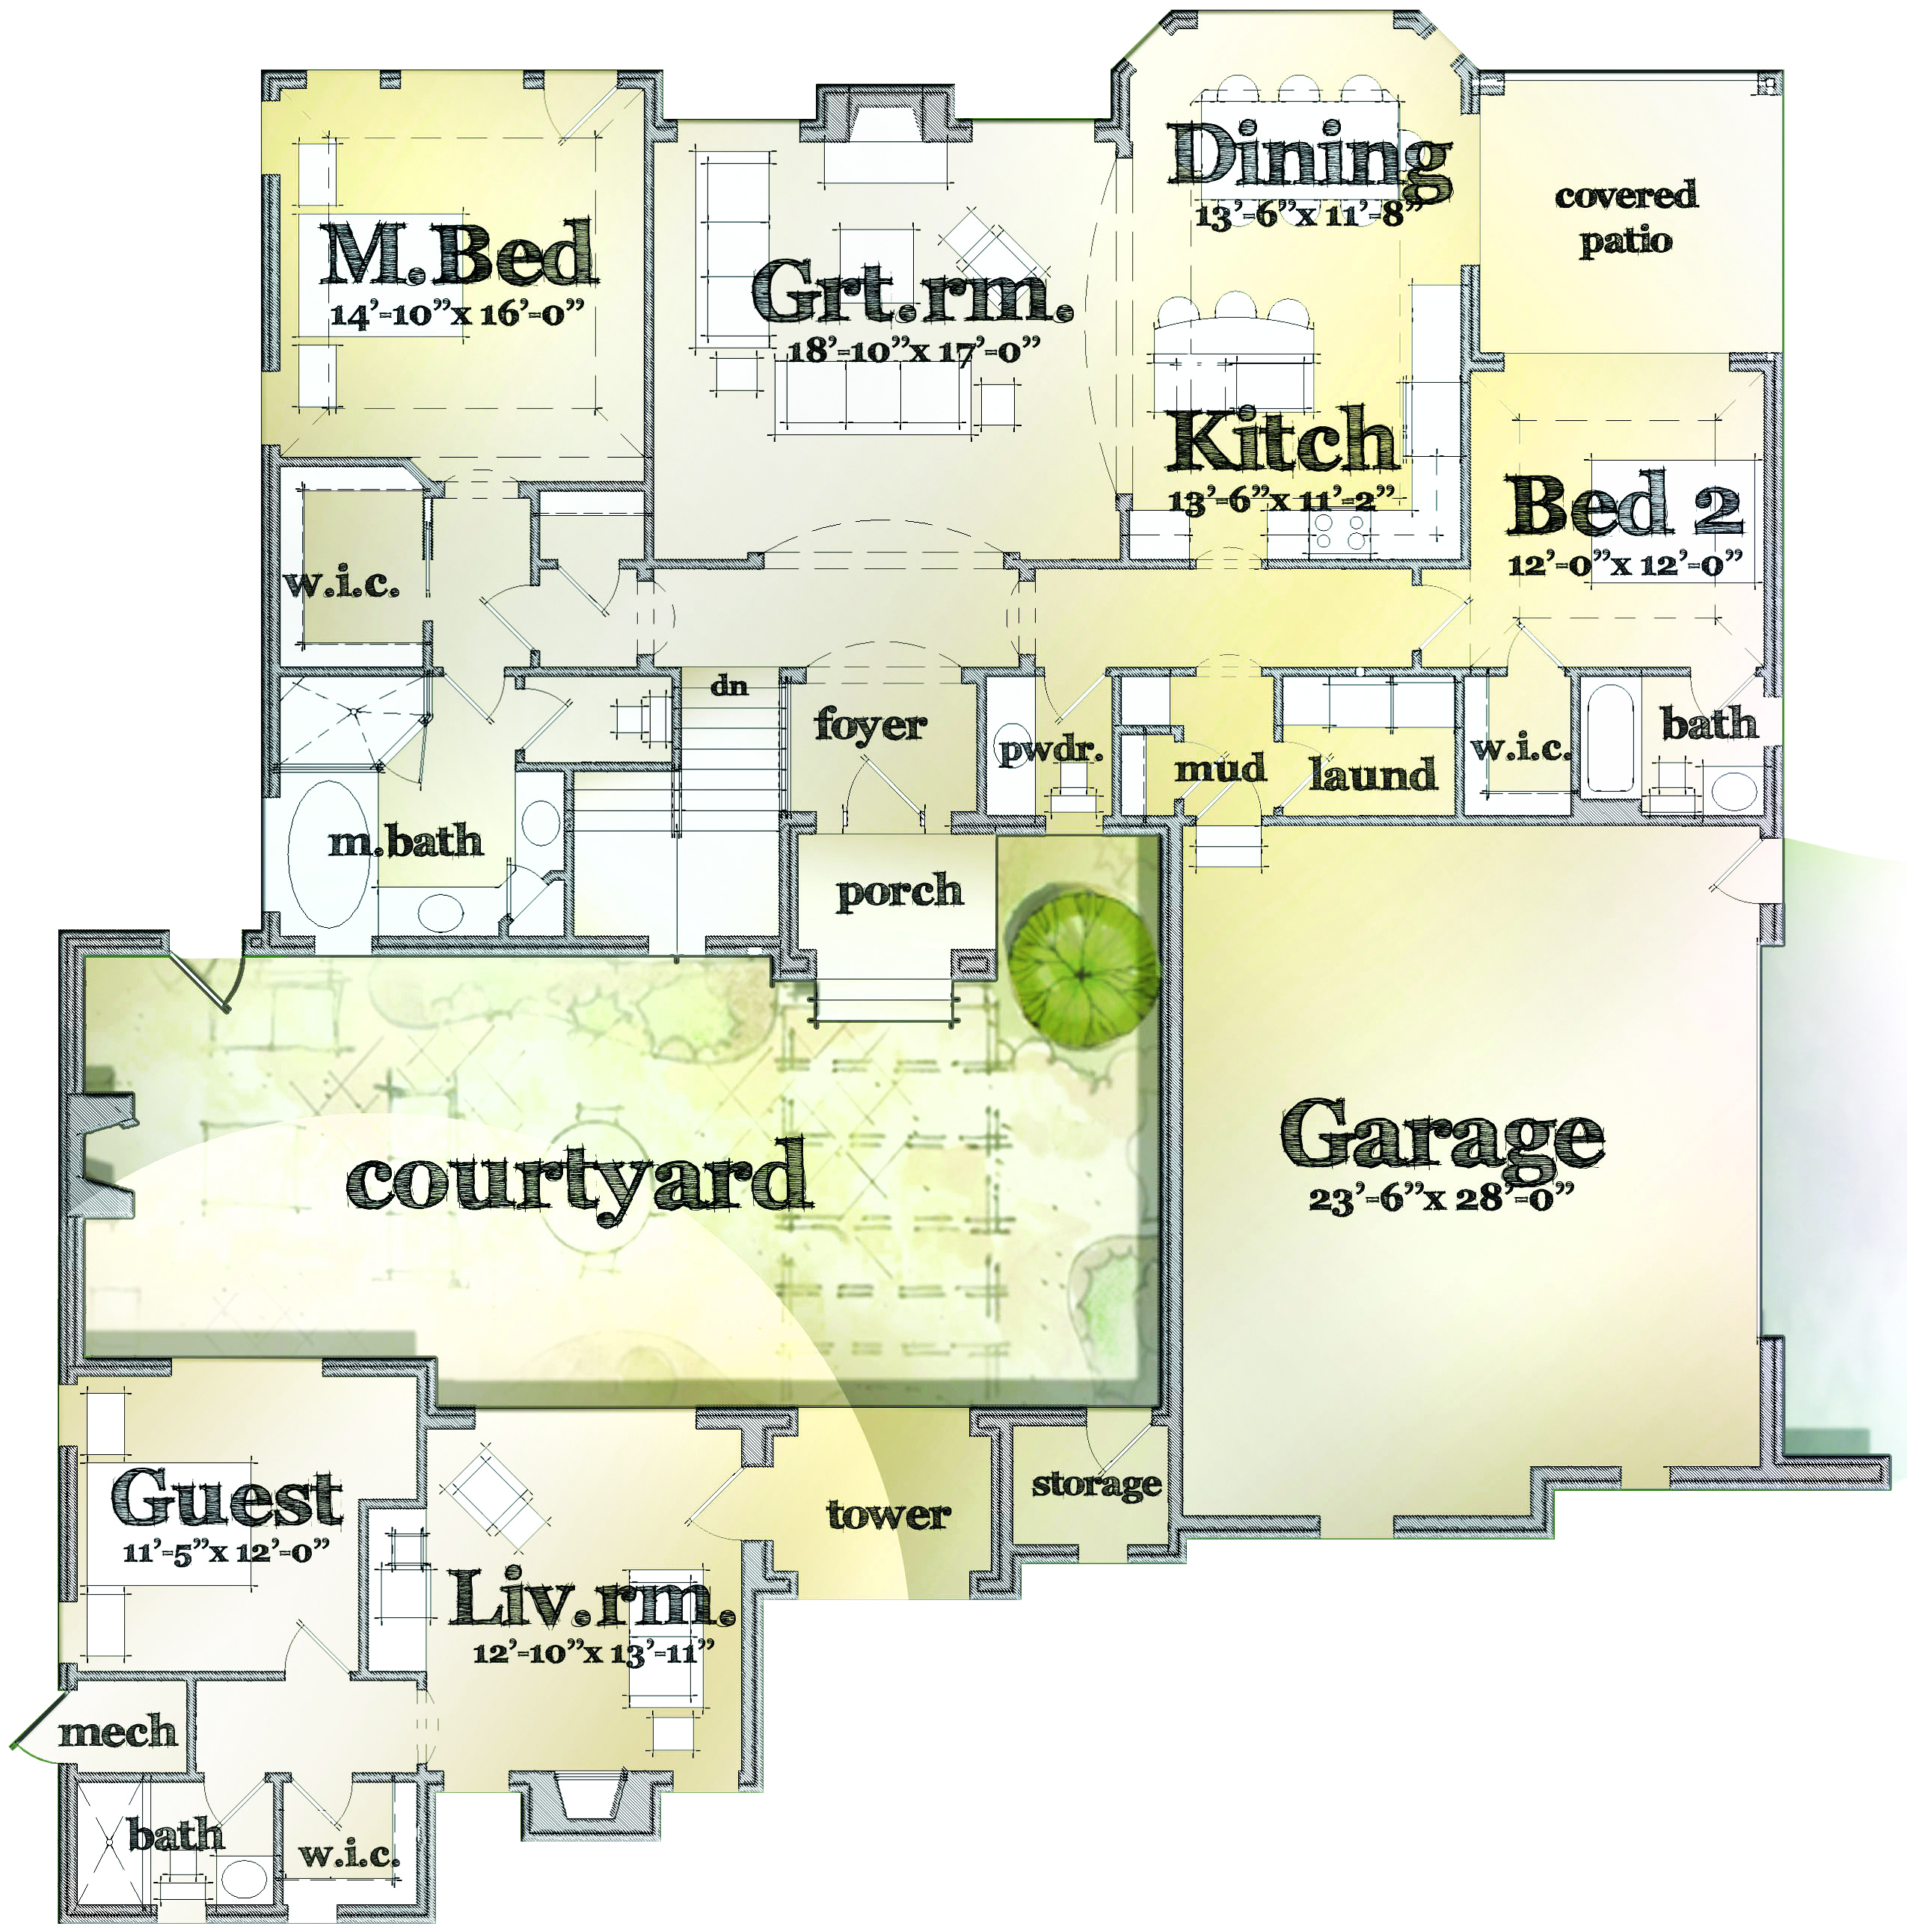 House Review: Casitas and In-Law Suites | Professional Builder on house exterior, house plans with detached in law suite, house floor plans, house with center courtyard, house plans ranch style home, house in valencia ca, house plans with courtyard in middle, house with basement garage, house plans under 600 feet, house with detached garage breezeway, house plans for disabled, house plans with apartment suites, house plans for a family of 5, house above garage, house plans with 2 master suites, house plans with kitchen in back of house, house plans with mother daughter suites, house in law suite addition plans, homes with in-law suites,